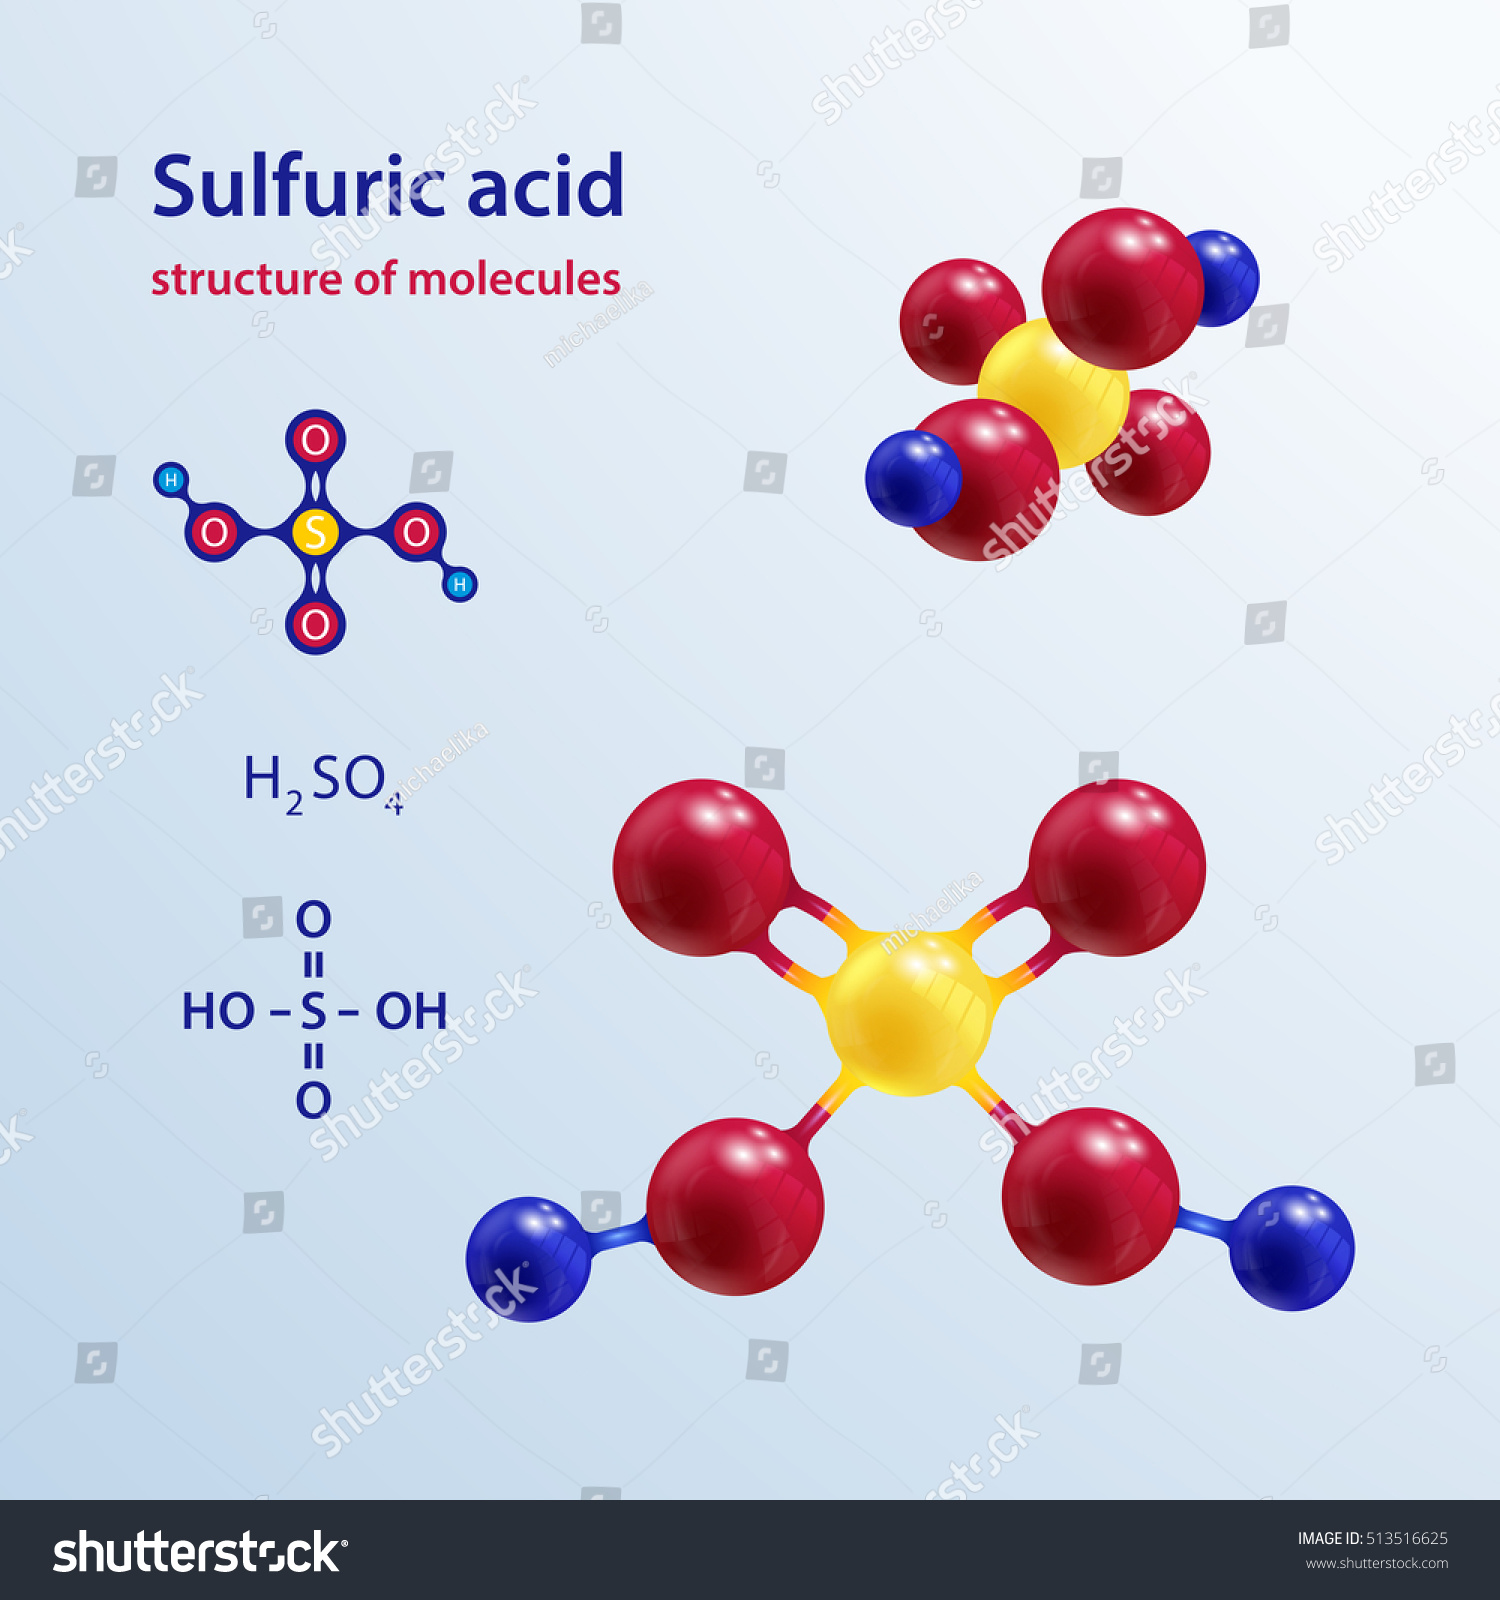 Structure Molecules Sulfuric Acid Molecule Chemical Stock Vector